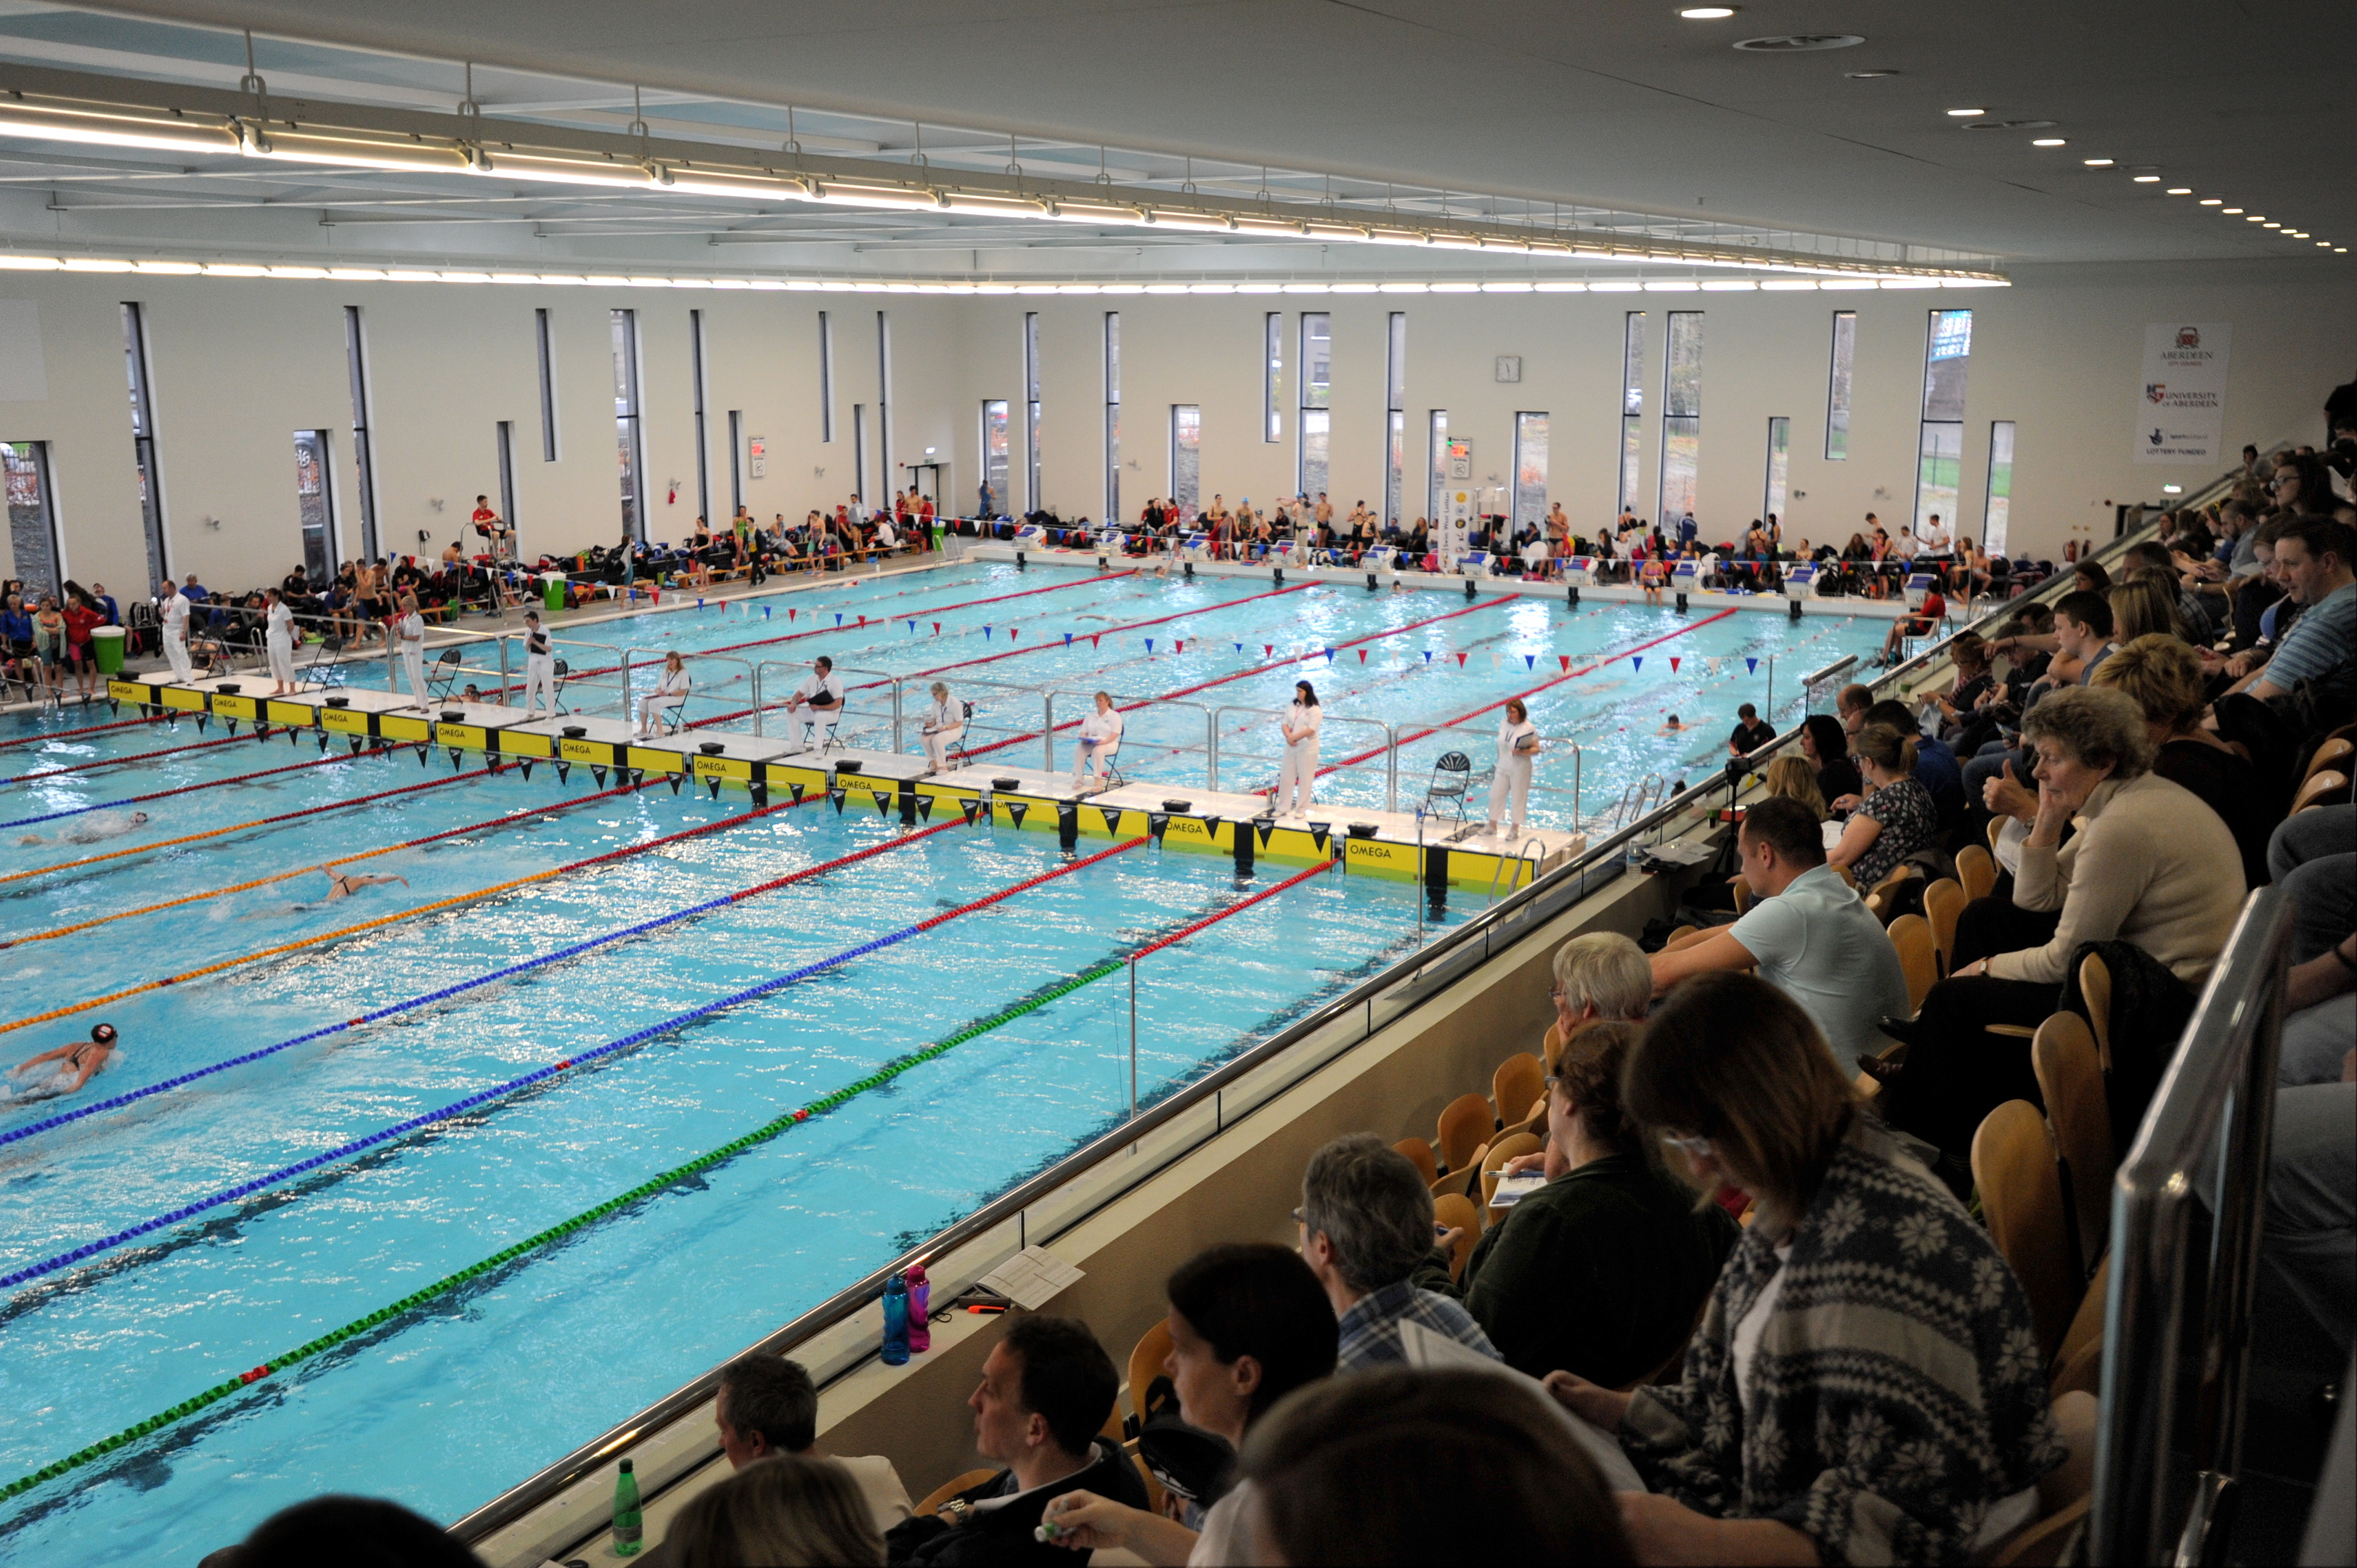 More than 230,000 people have visited the Aquatics centre this year.